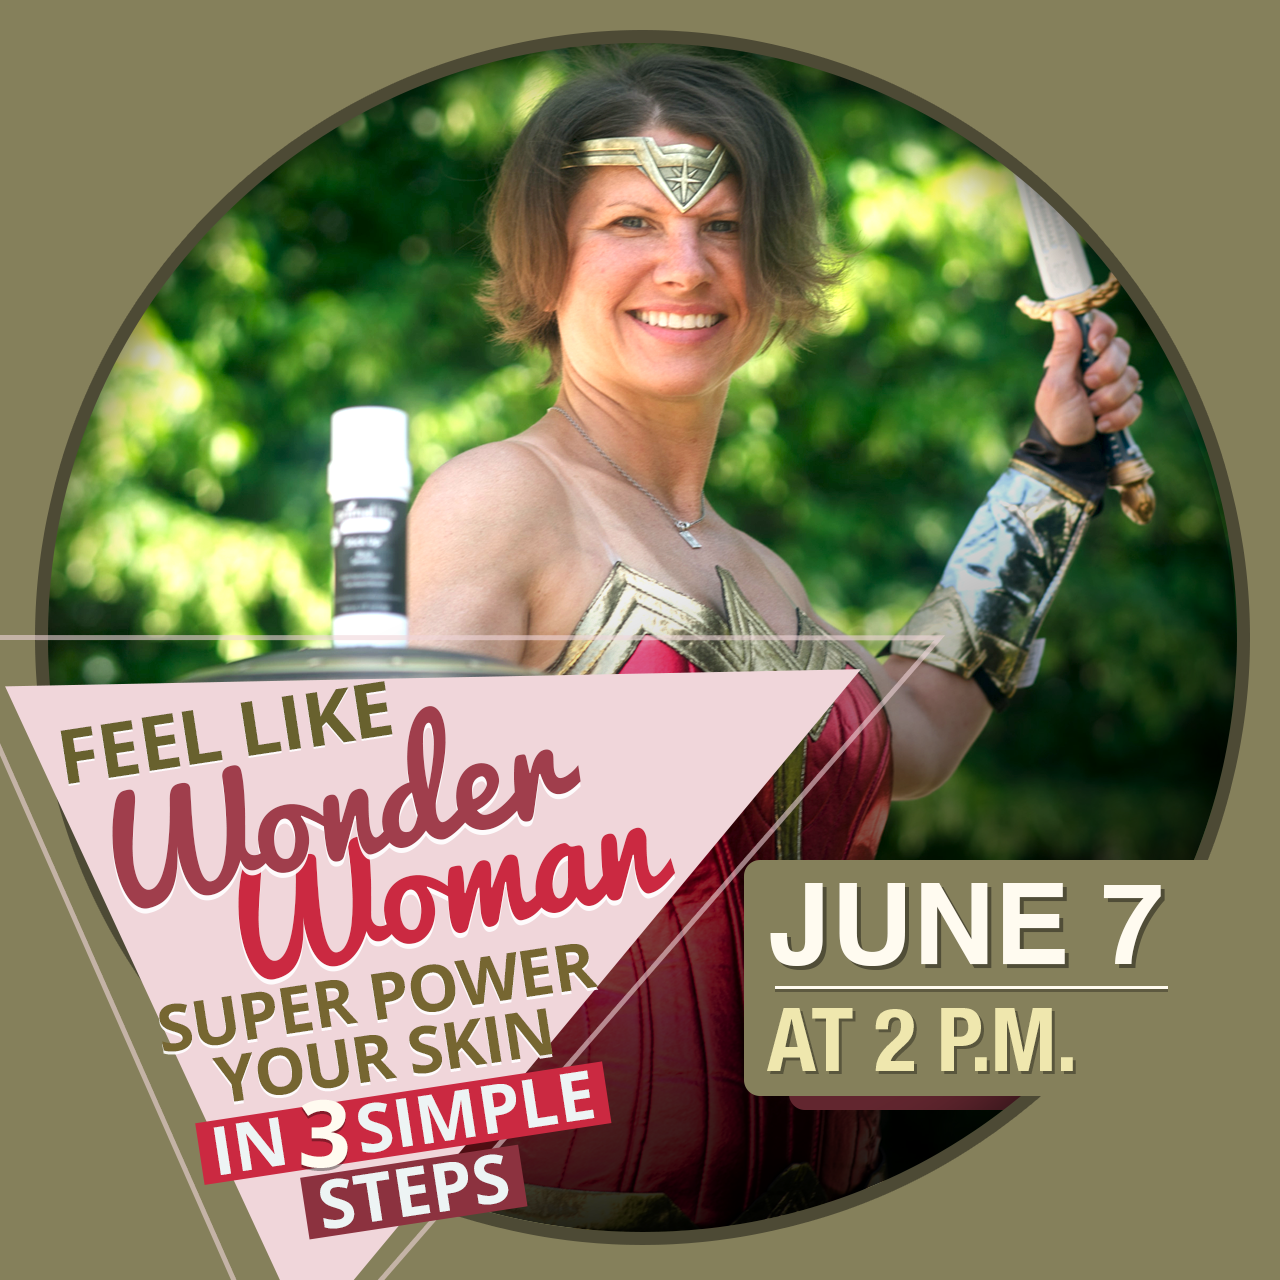 Talk With Trina: Wednesday, June 7 on Facebook Live. Topic: Feel Like Wonder Woman - Super Power your skin in 3 simple steps